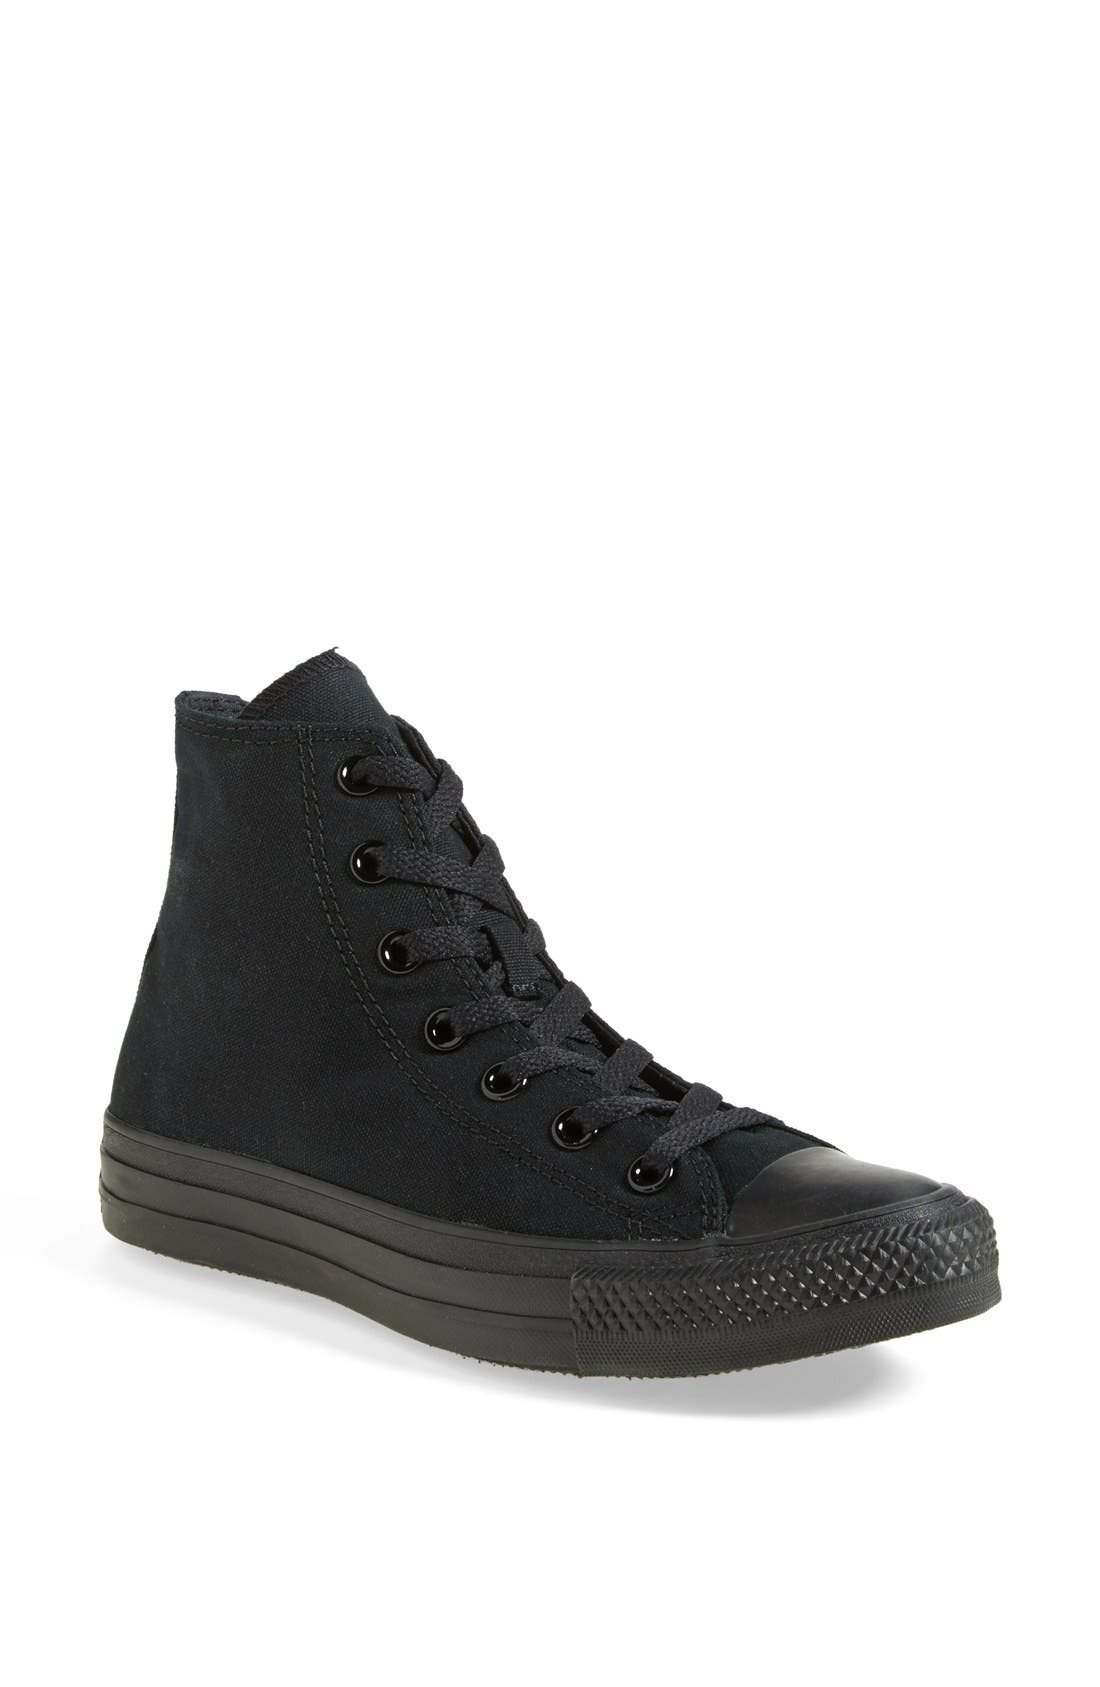 Chuck Taylor<sup>®</sup> All Star<sup>®</sup> High Top Sneaker,                             Main thumbnail 1, color,                             006